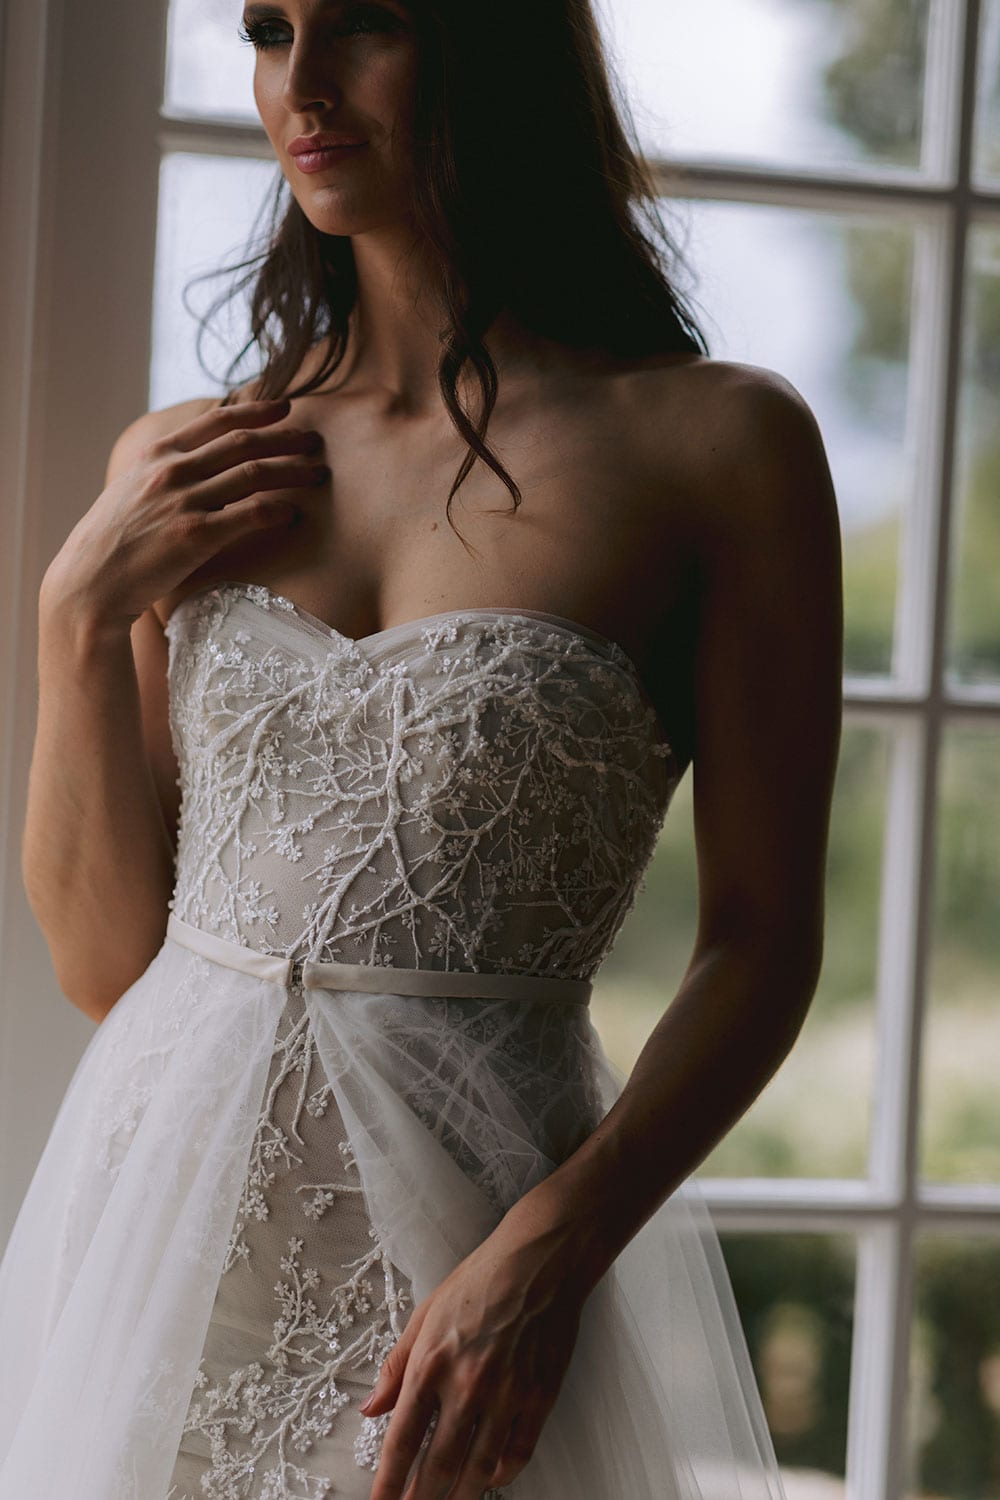 Nera Wedding gown from Vinka Design - Feminine, form-fitting strapless lace wedding dress. Boned stretch base that sculpts and hugs the figure with delicate blossom lace appliqued by hand in to flatter the shape of the body. Model wearing gown showing intricate hand appliqued lace detail.